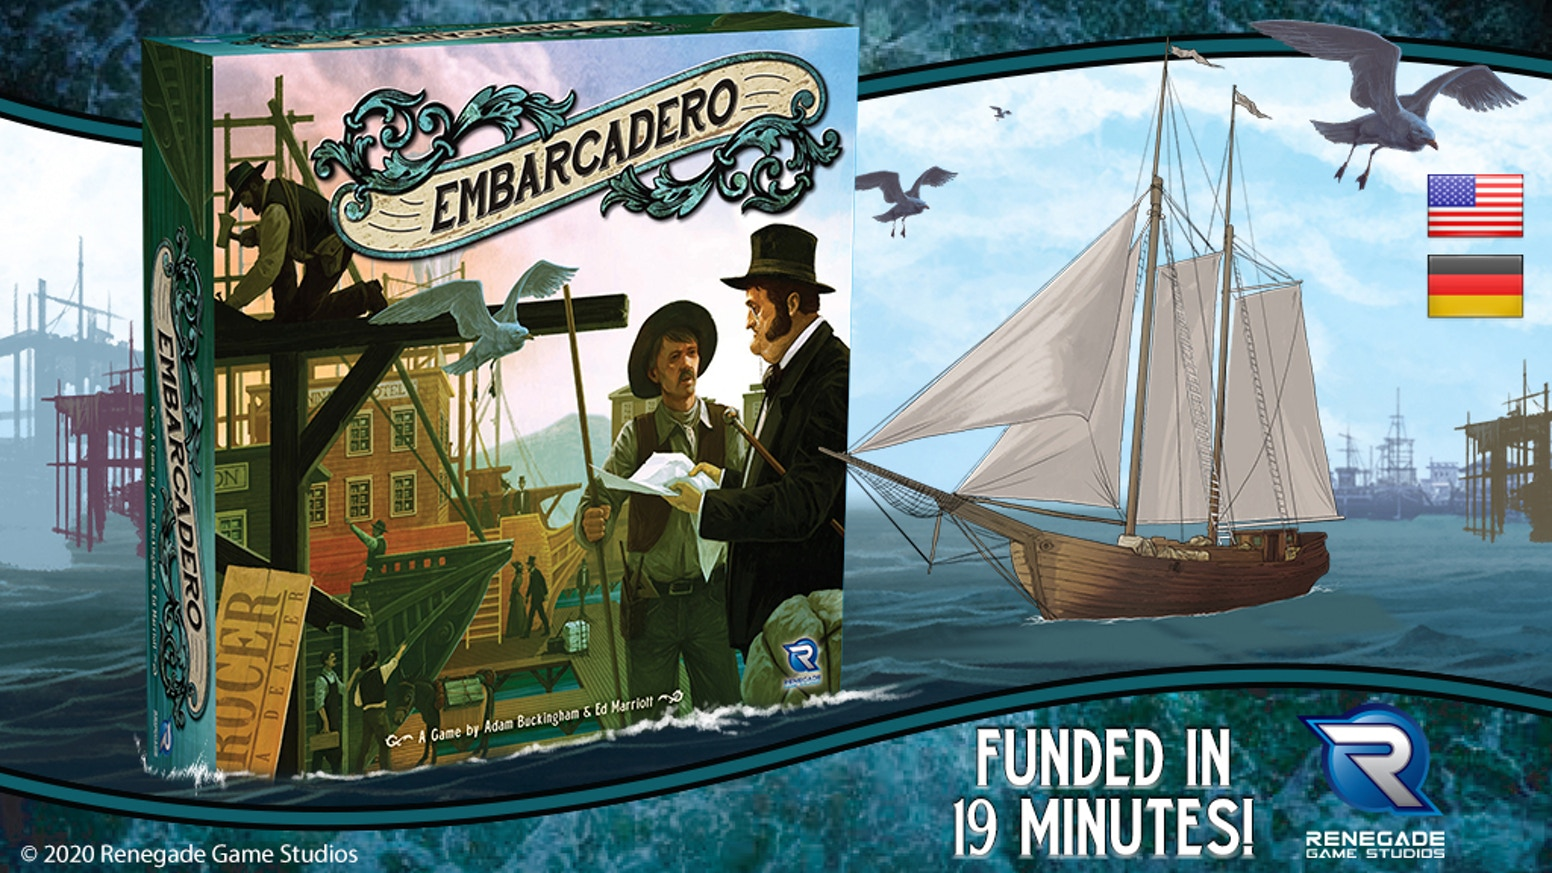 Build the city of San Francisco on the hulls of abandoned ships during the California Gold Rush.